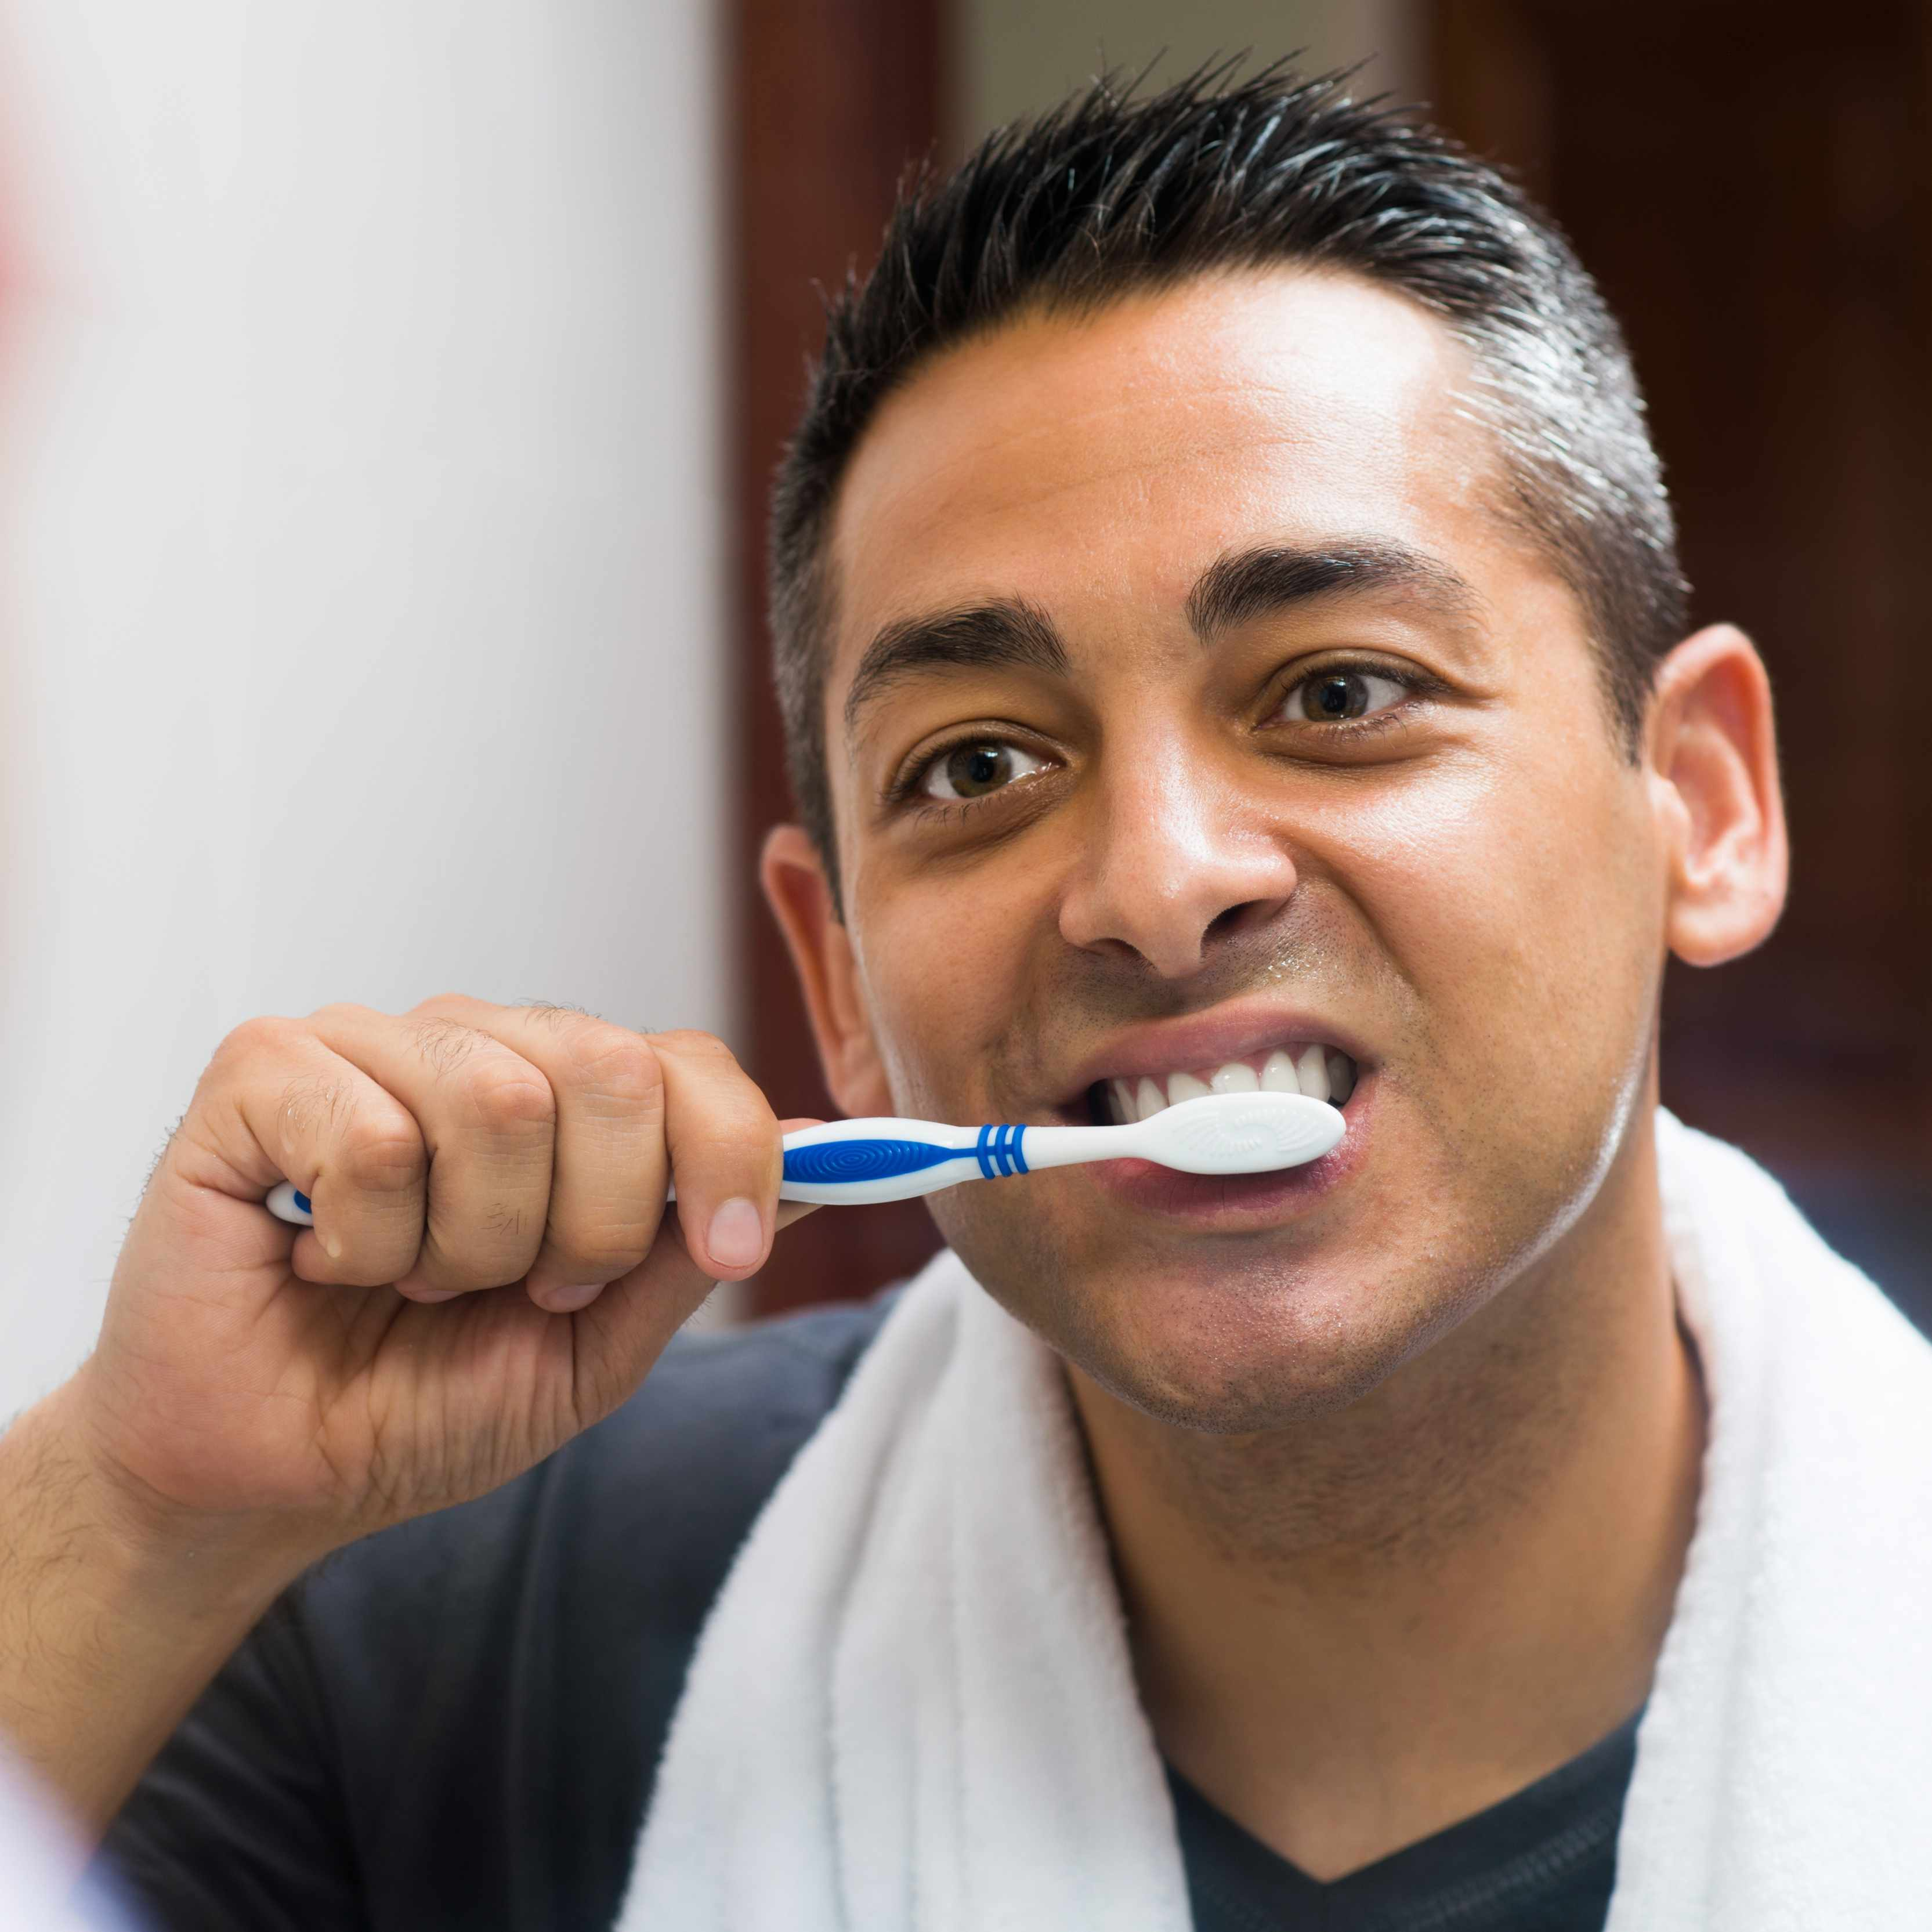 a man looking in a bathroom mirror and brushing his teeth